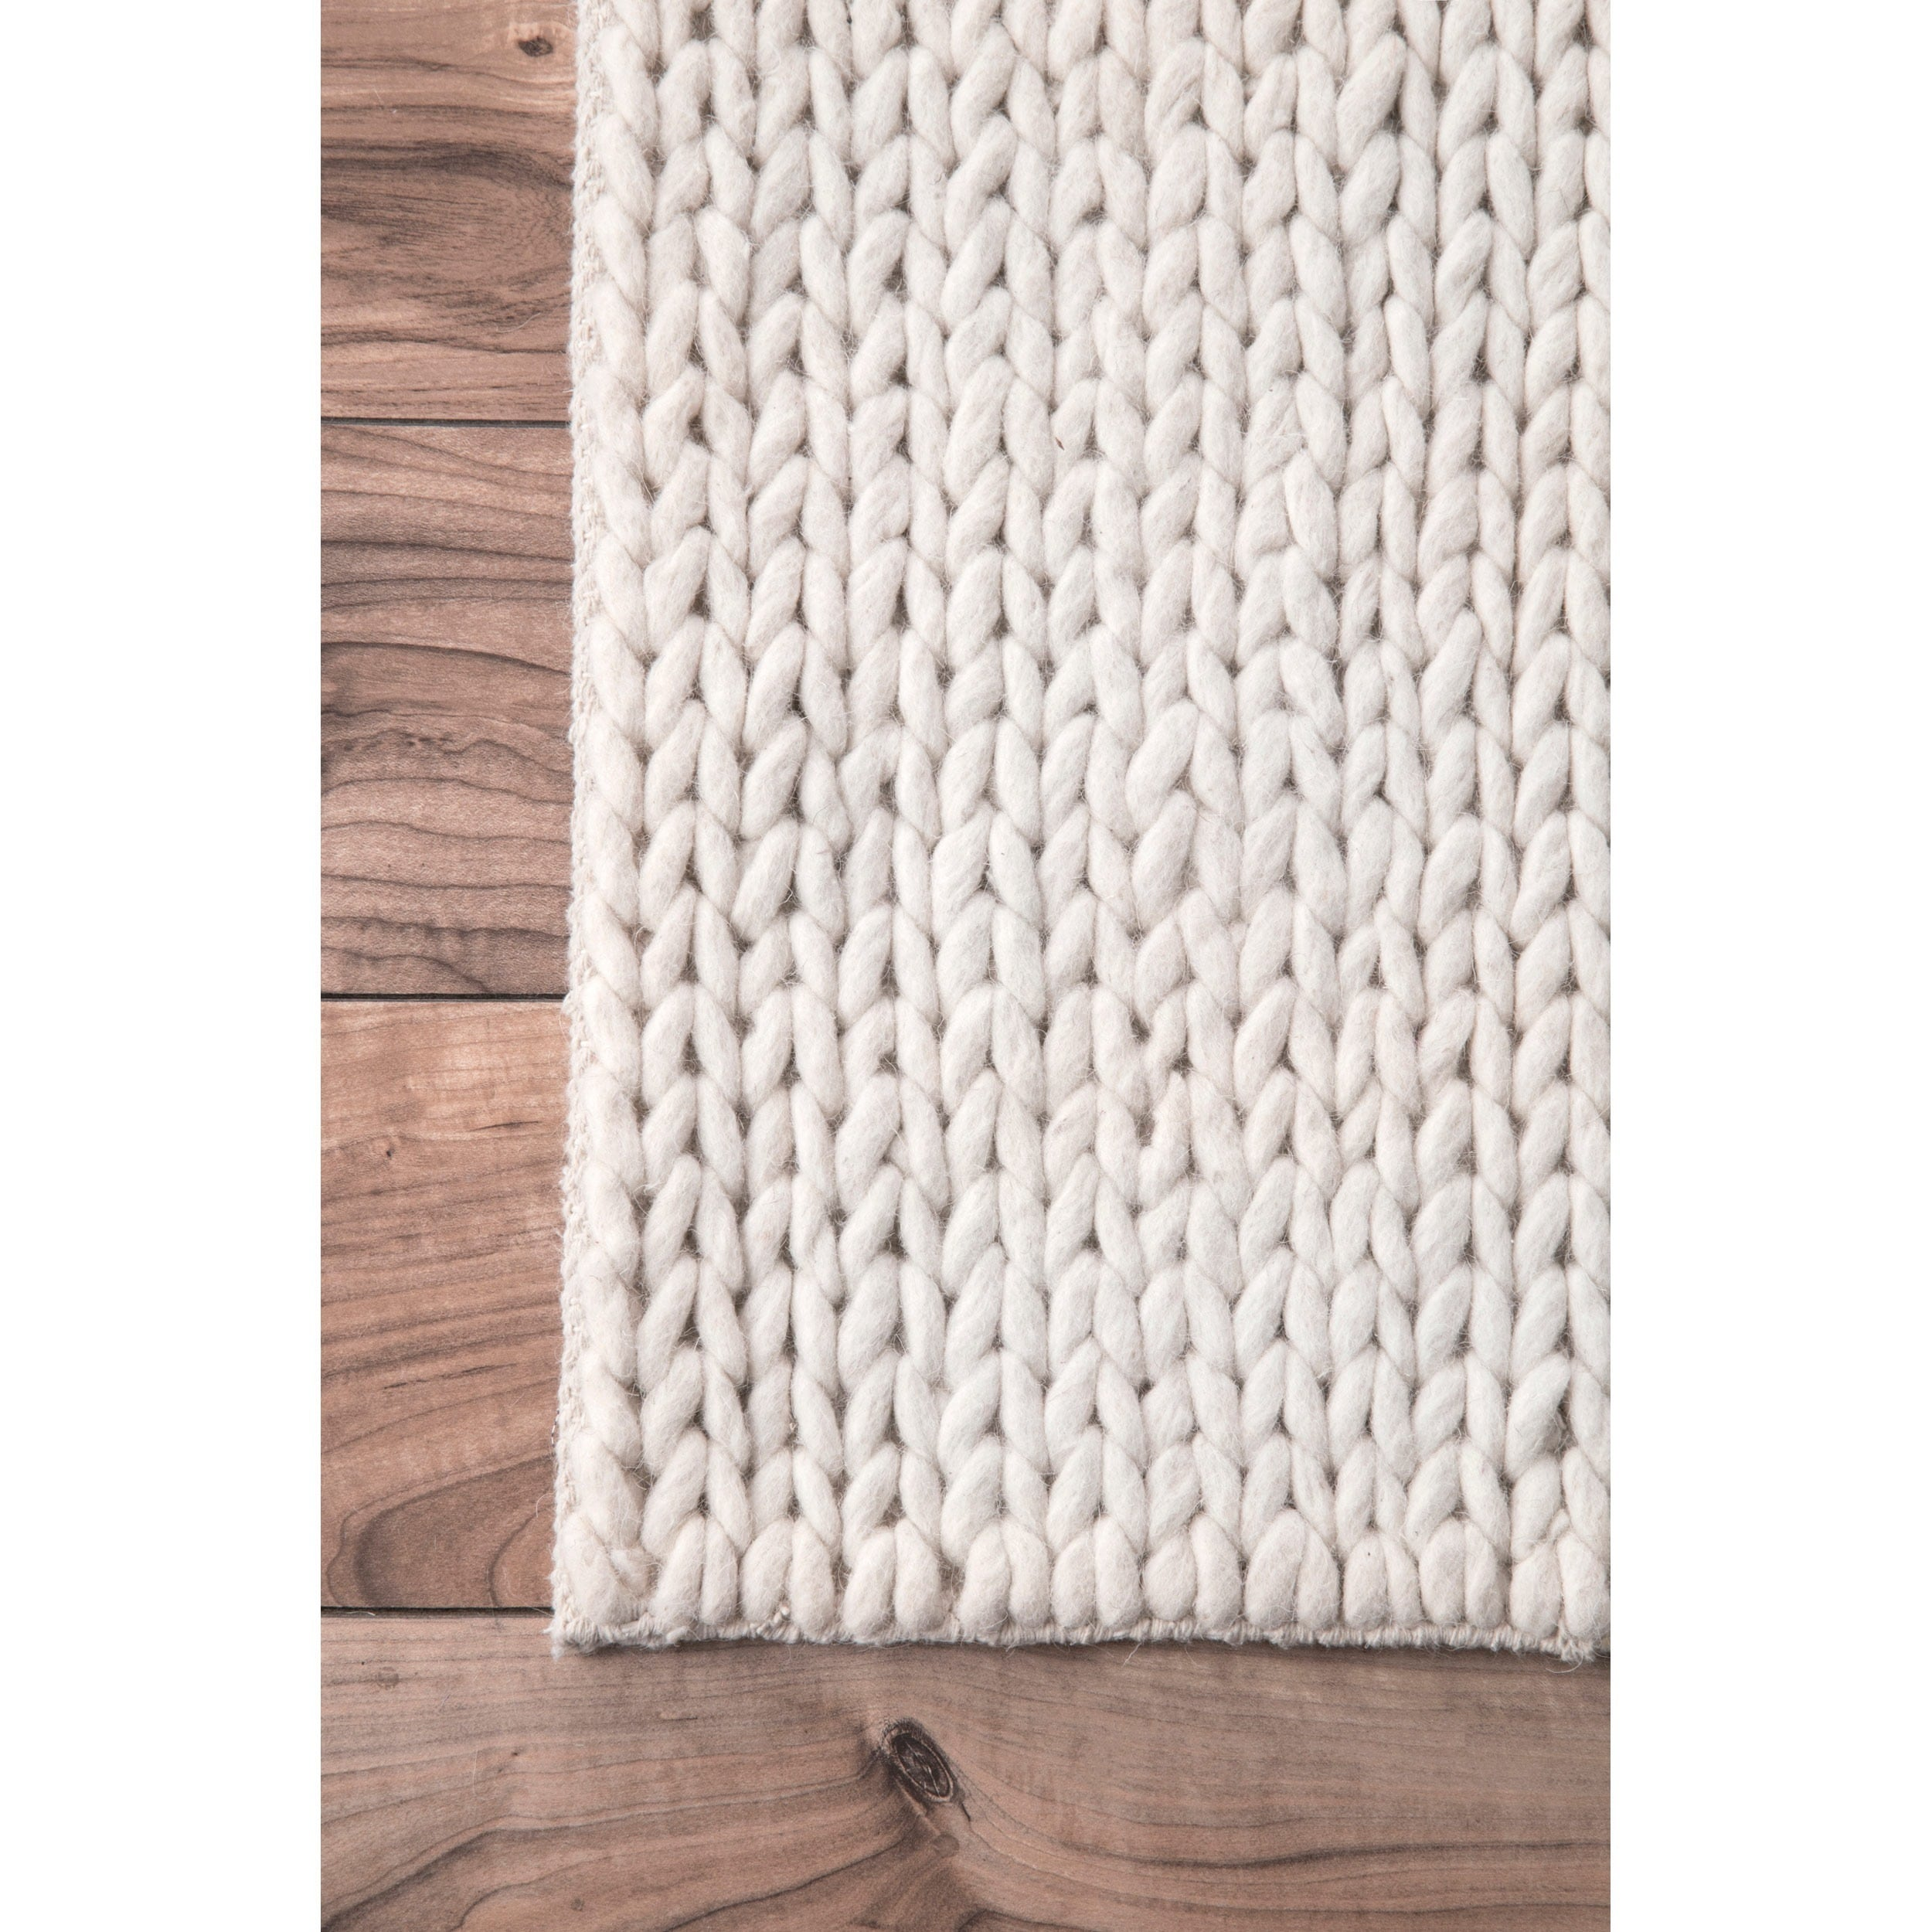 White wool rugs rugs ideas for Ikea ship to new zealand